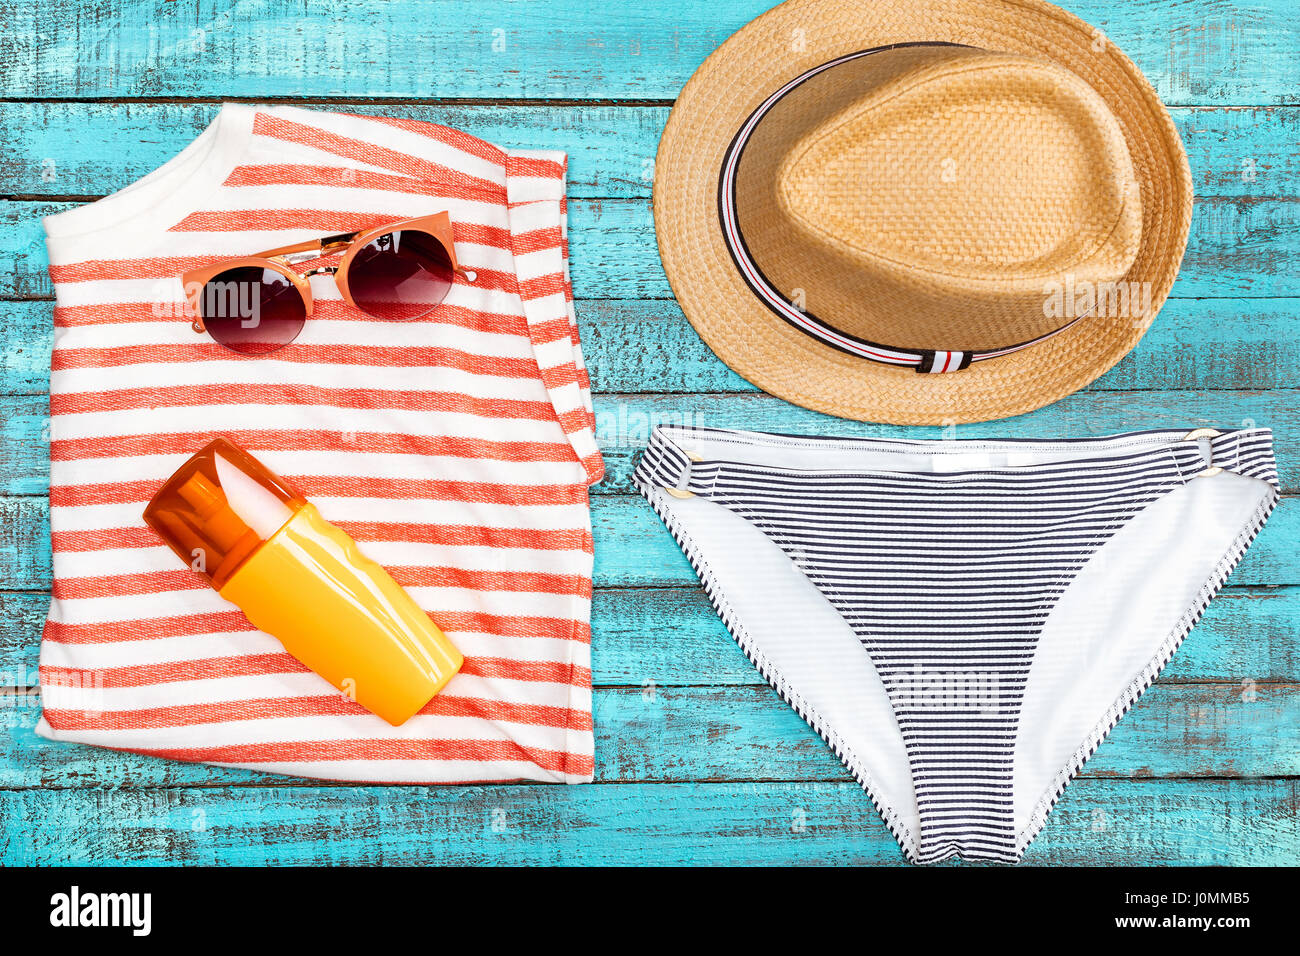 Top view of straw hat, bikini bottom, sunglasses and sunscreen on wooden table, summer concept - Stock Image